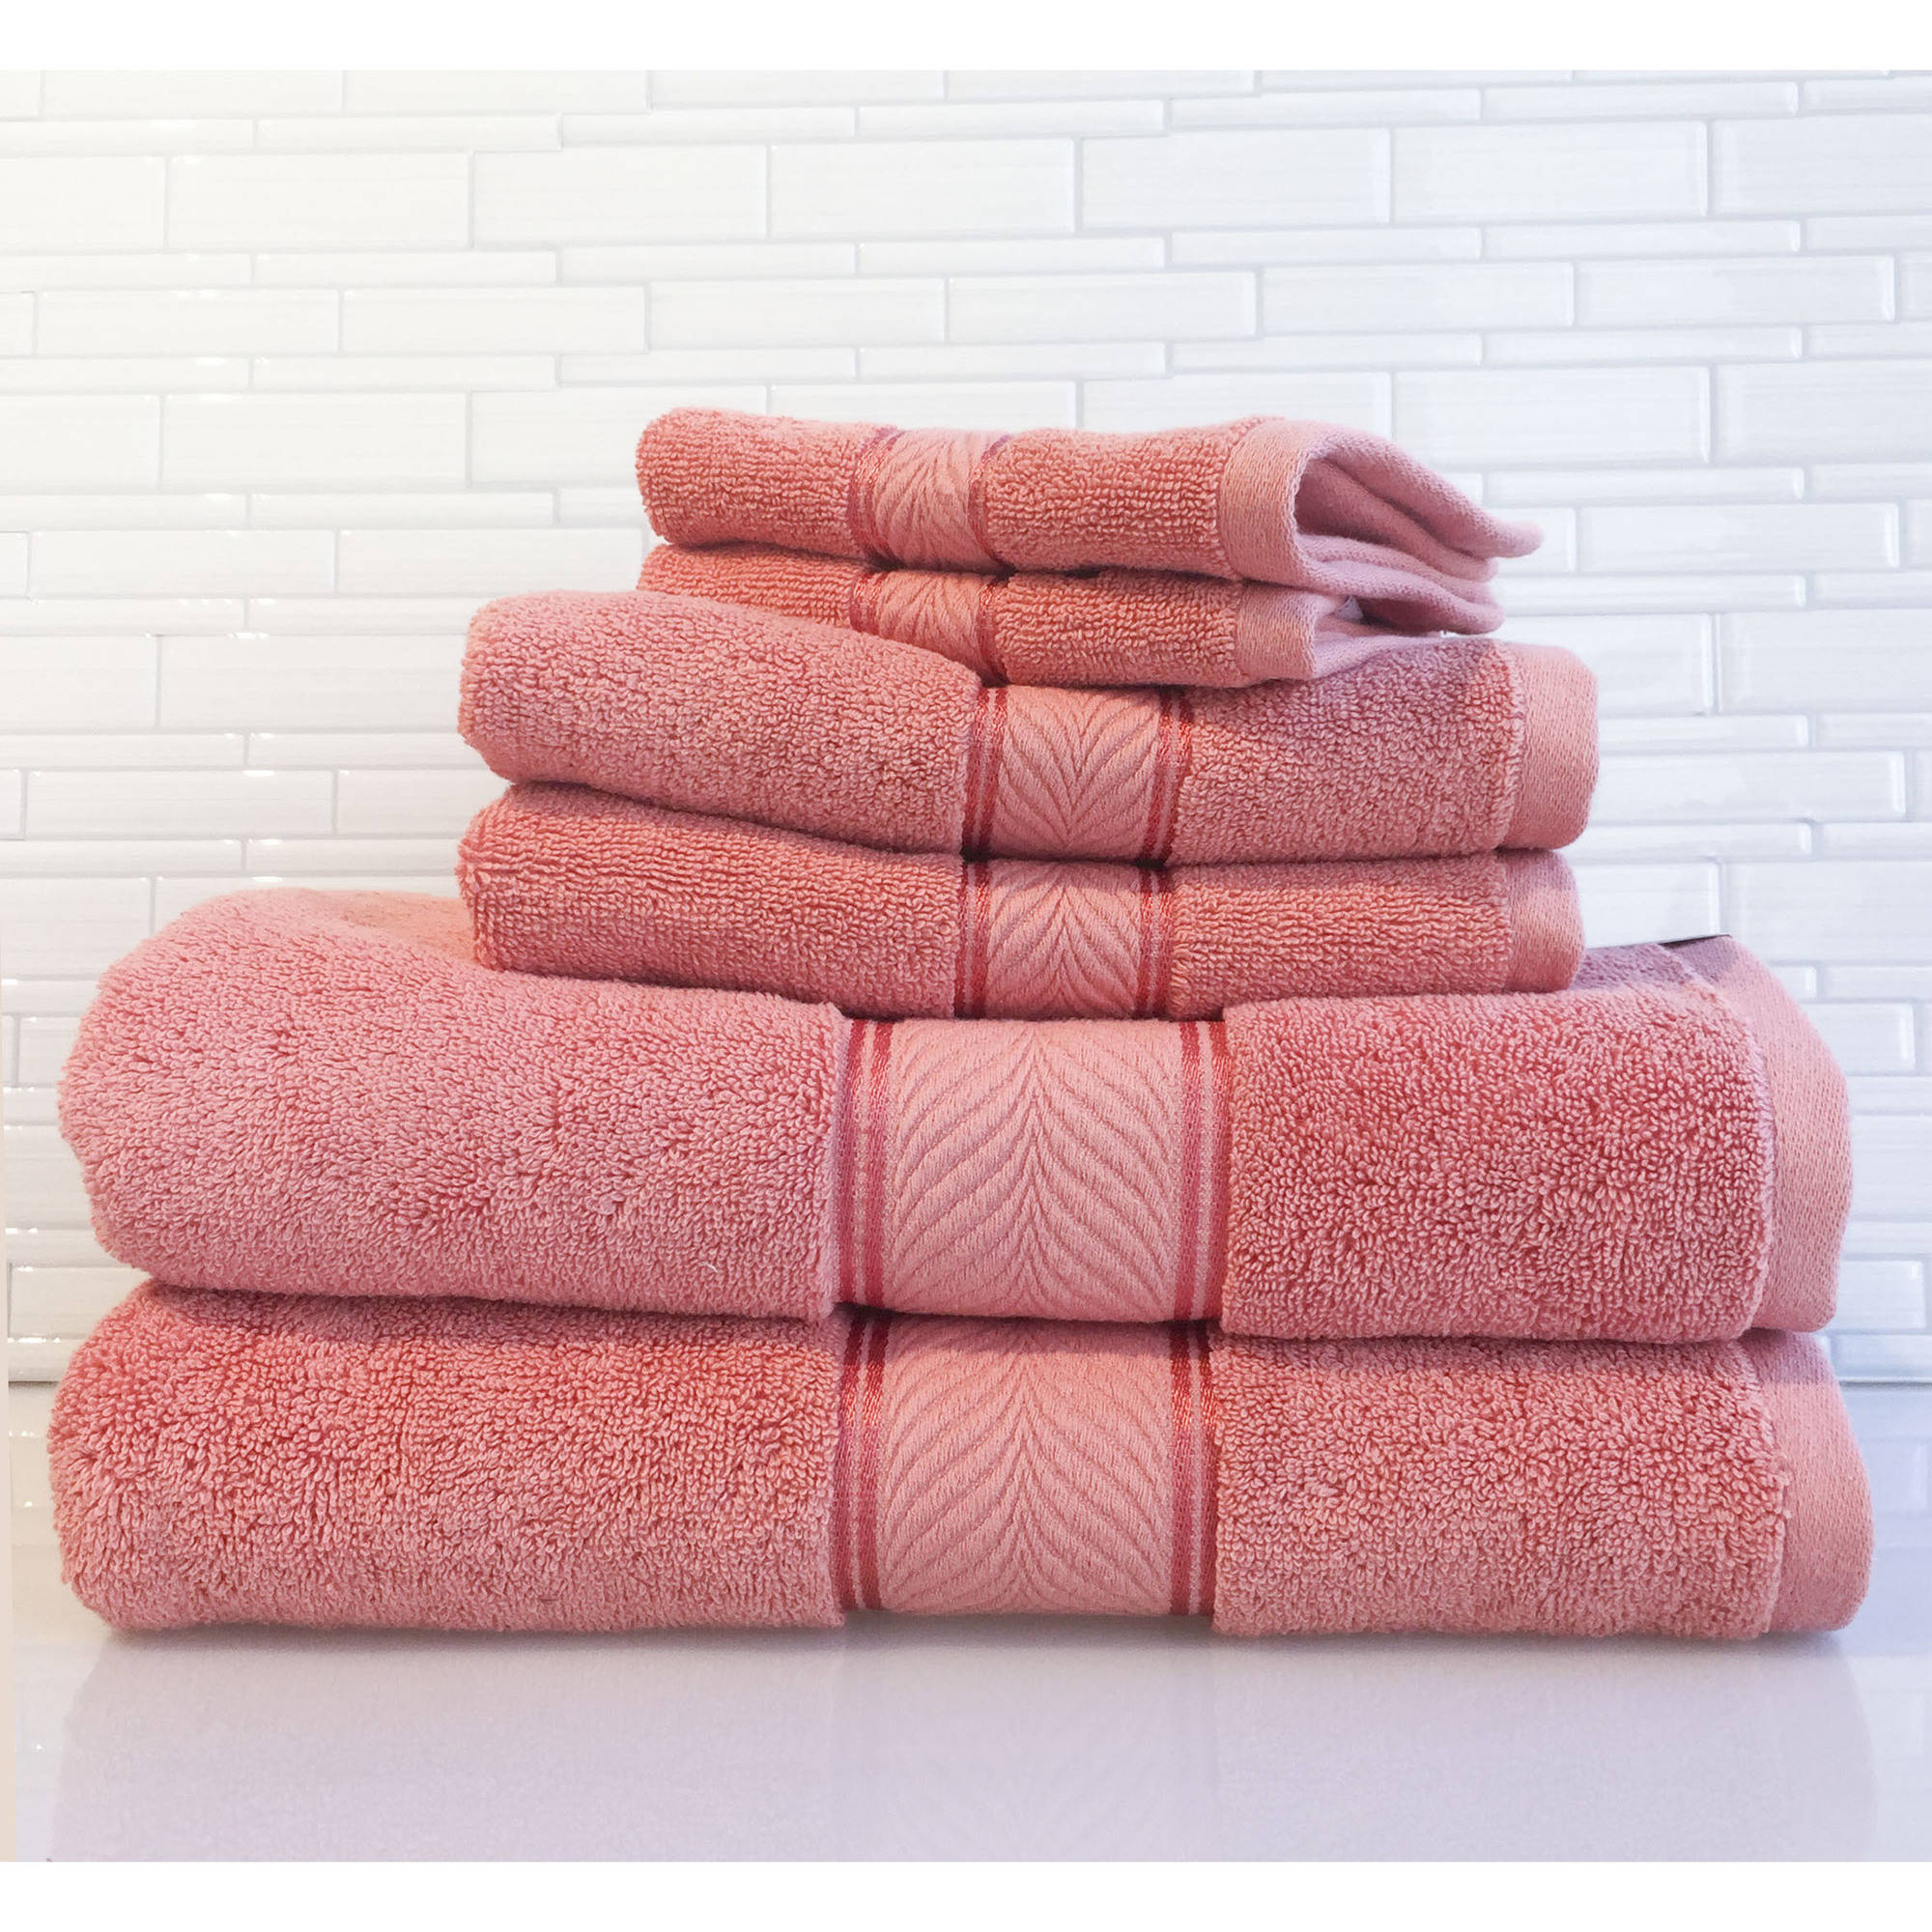 Better Homes and Gardens Thick and Plush Solid 6-Piece Towel Set, Gulf Coral